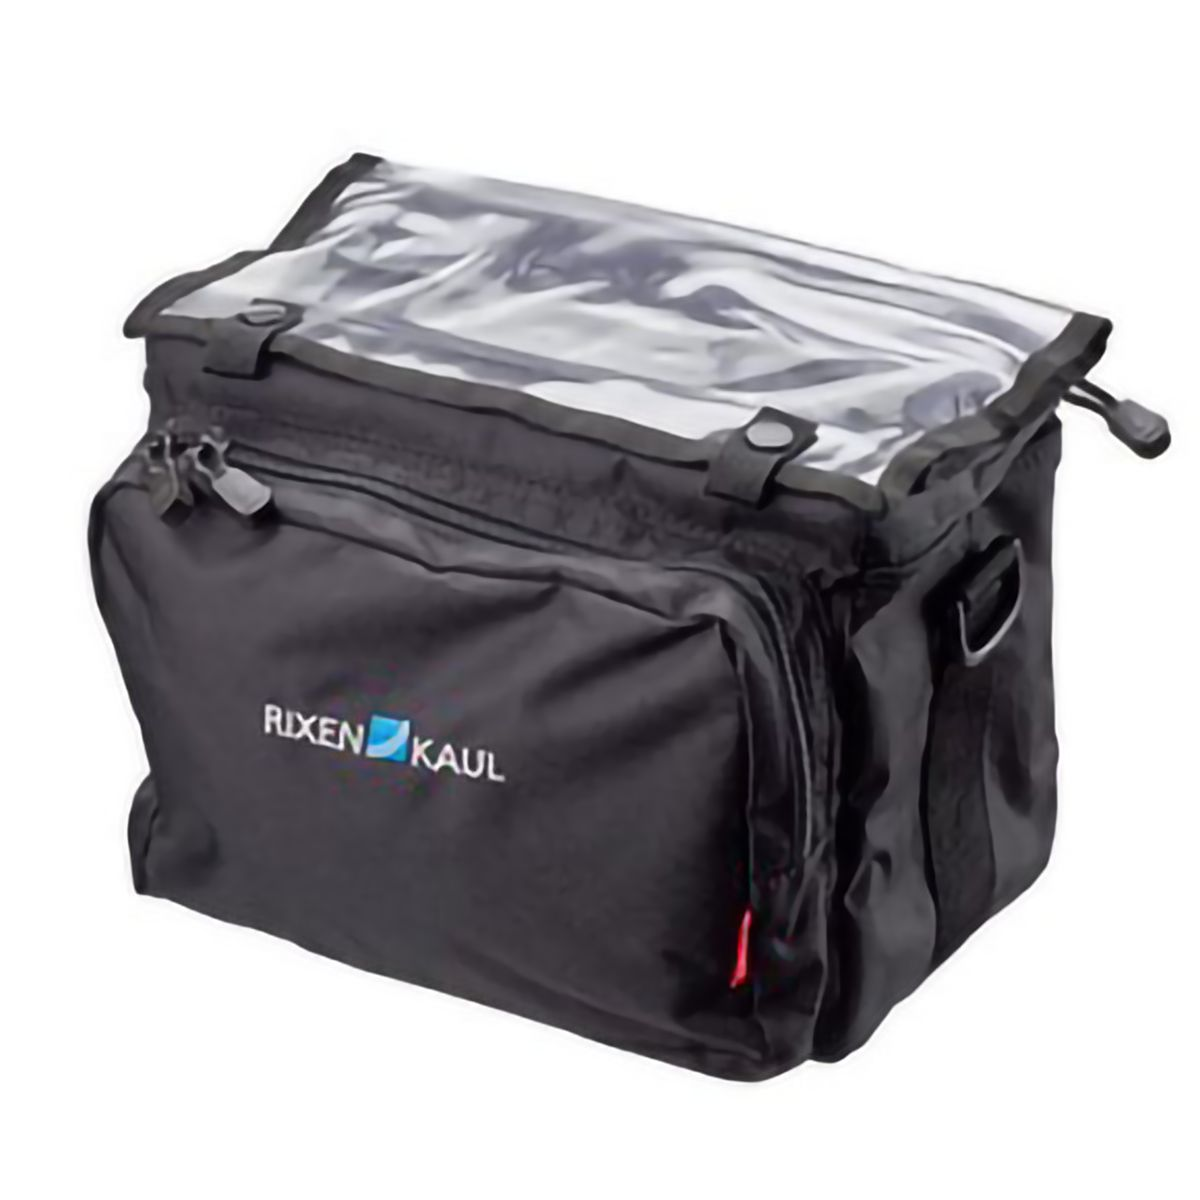 DAYPACK BOX with Adapter